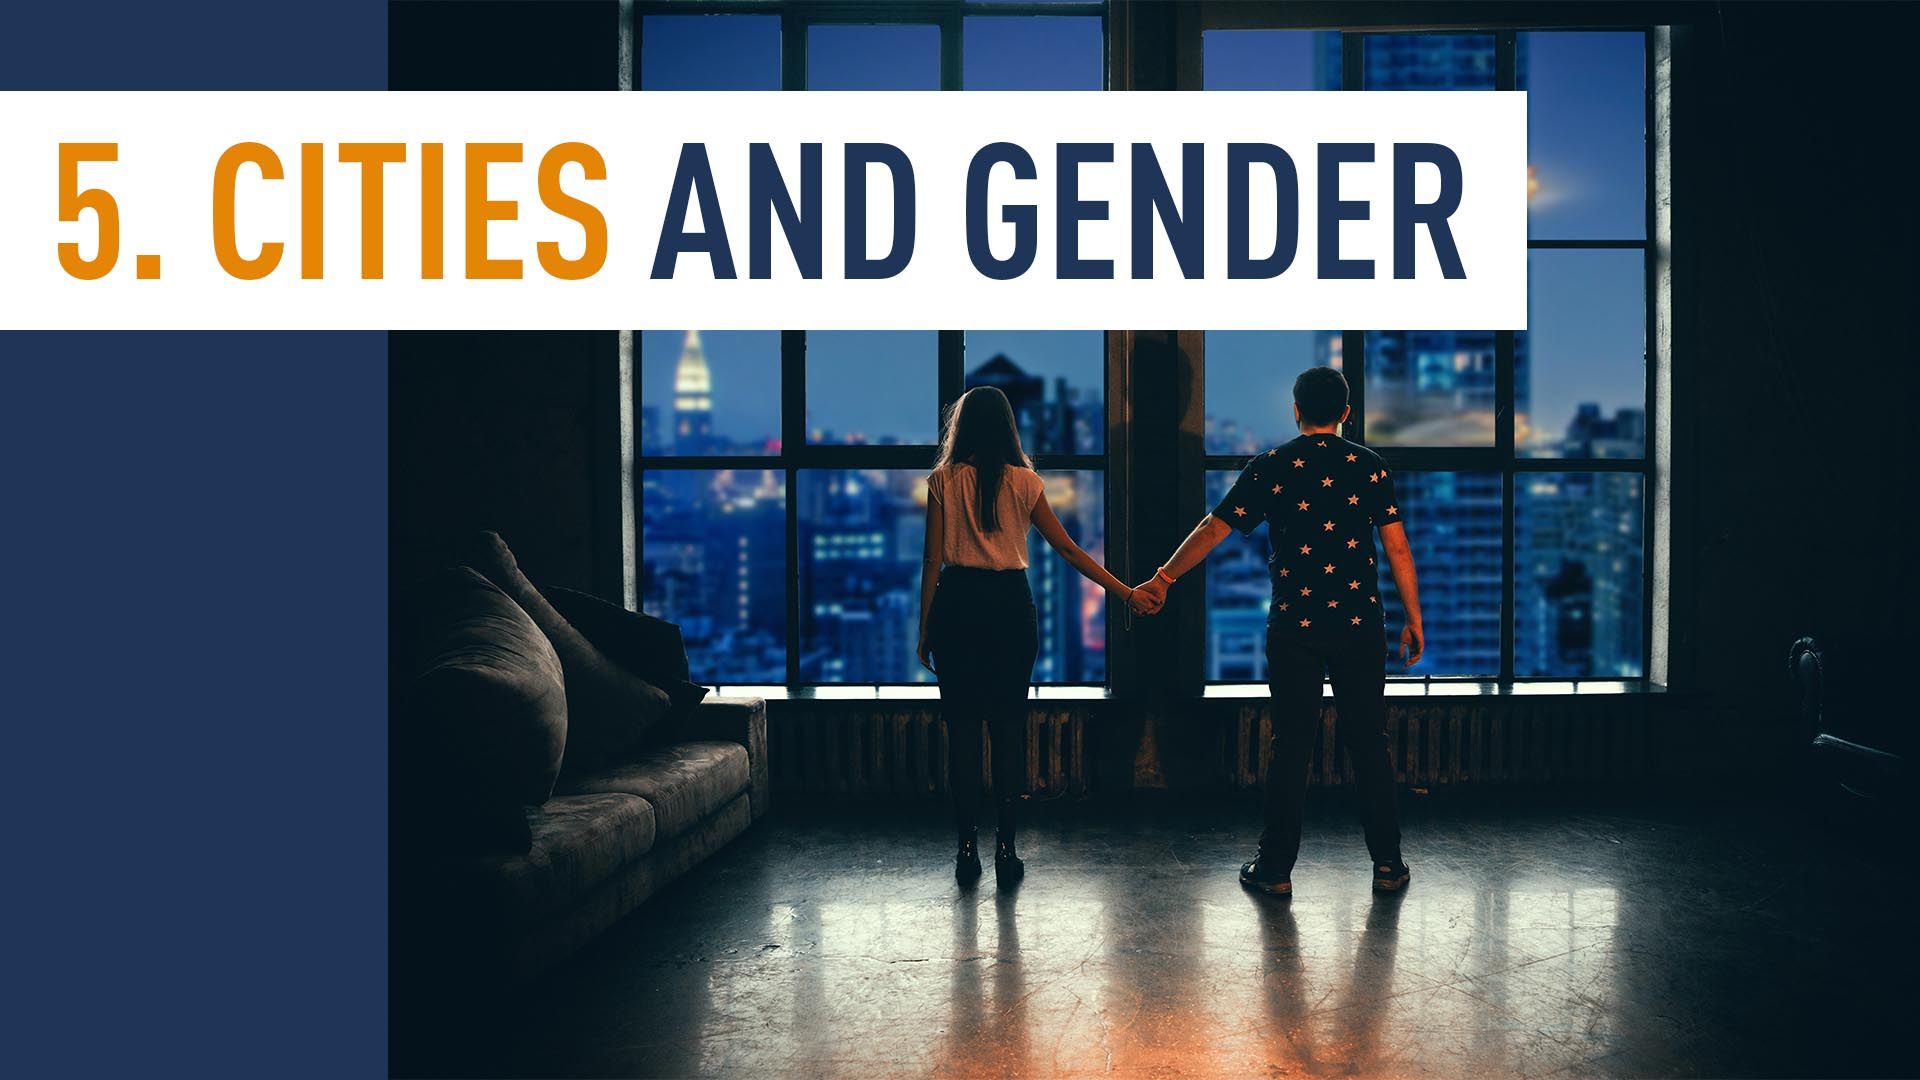 CITIES AND GENDER